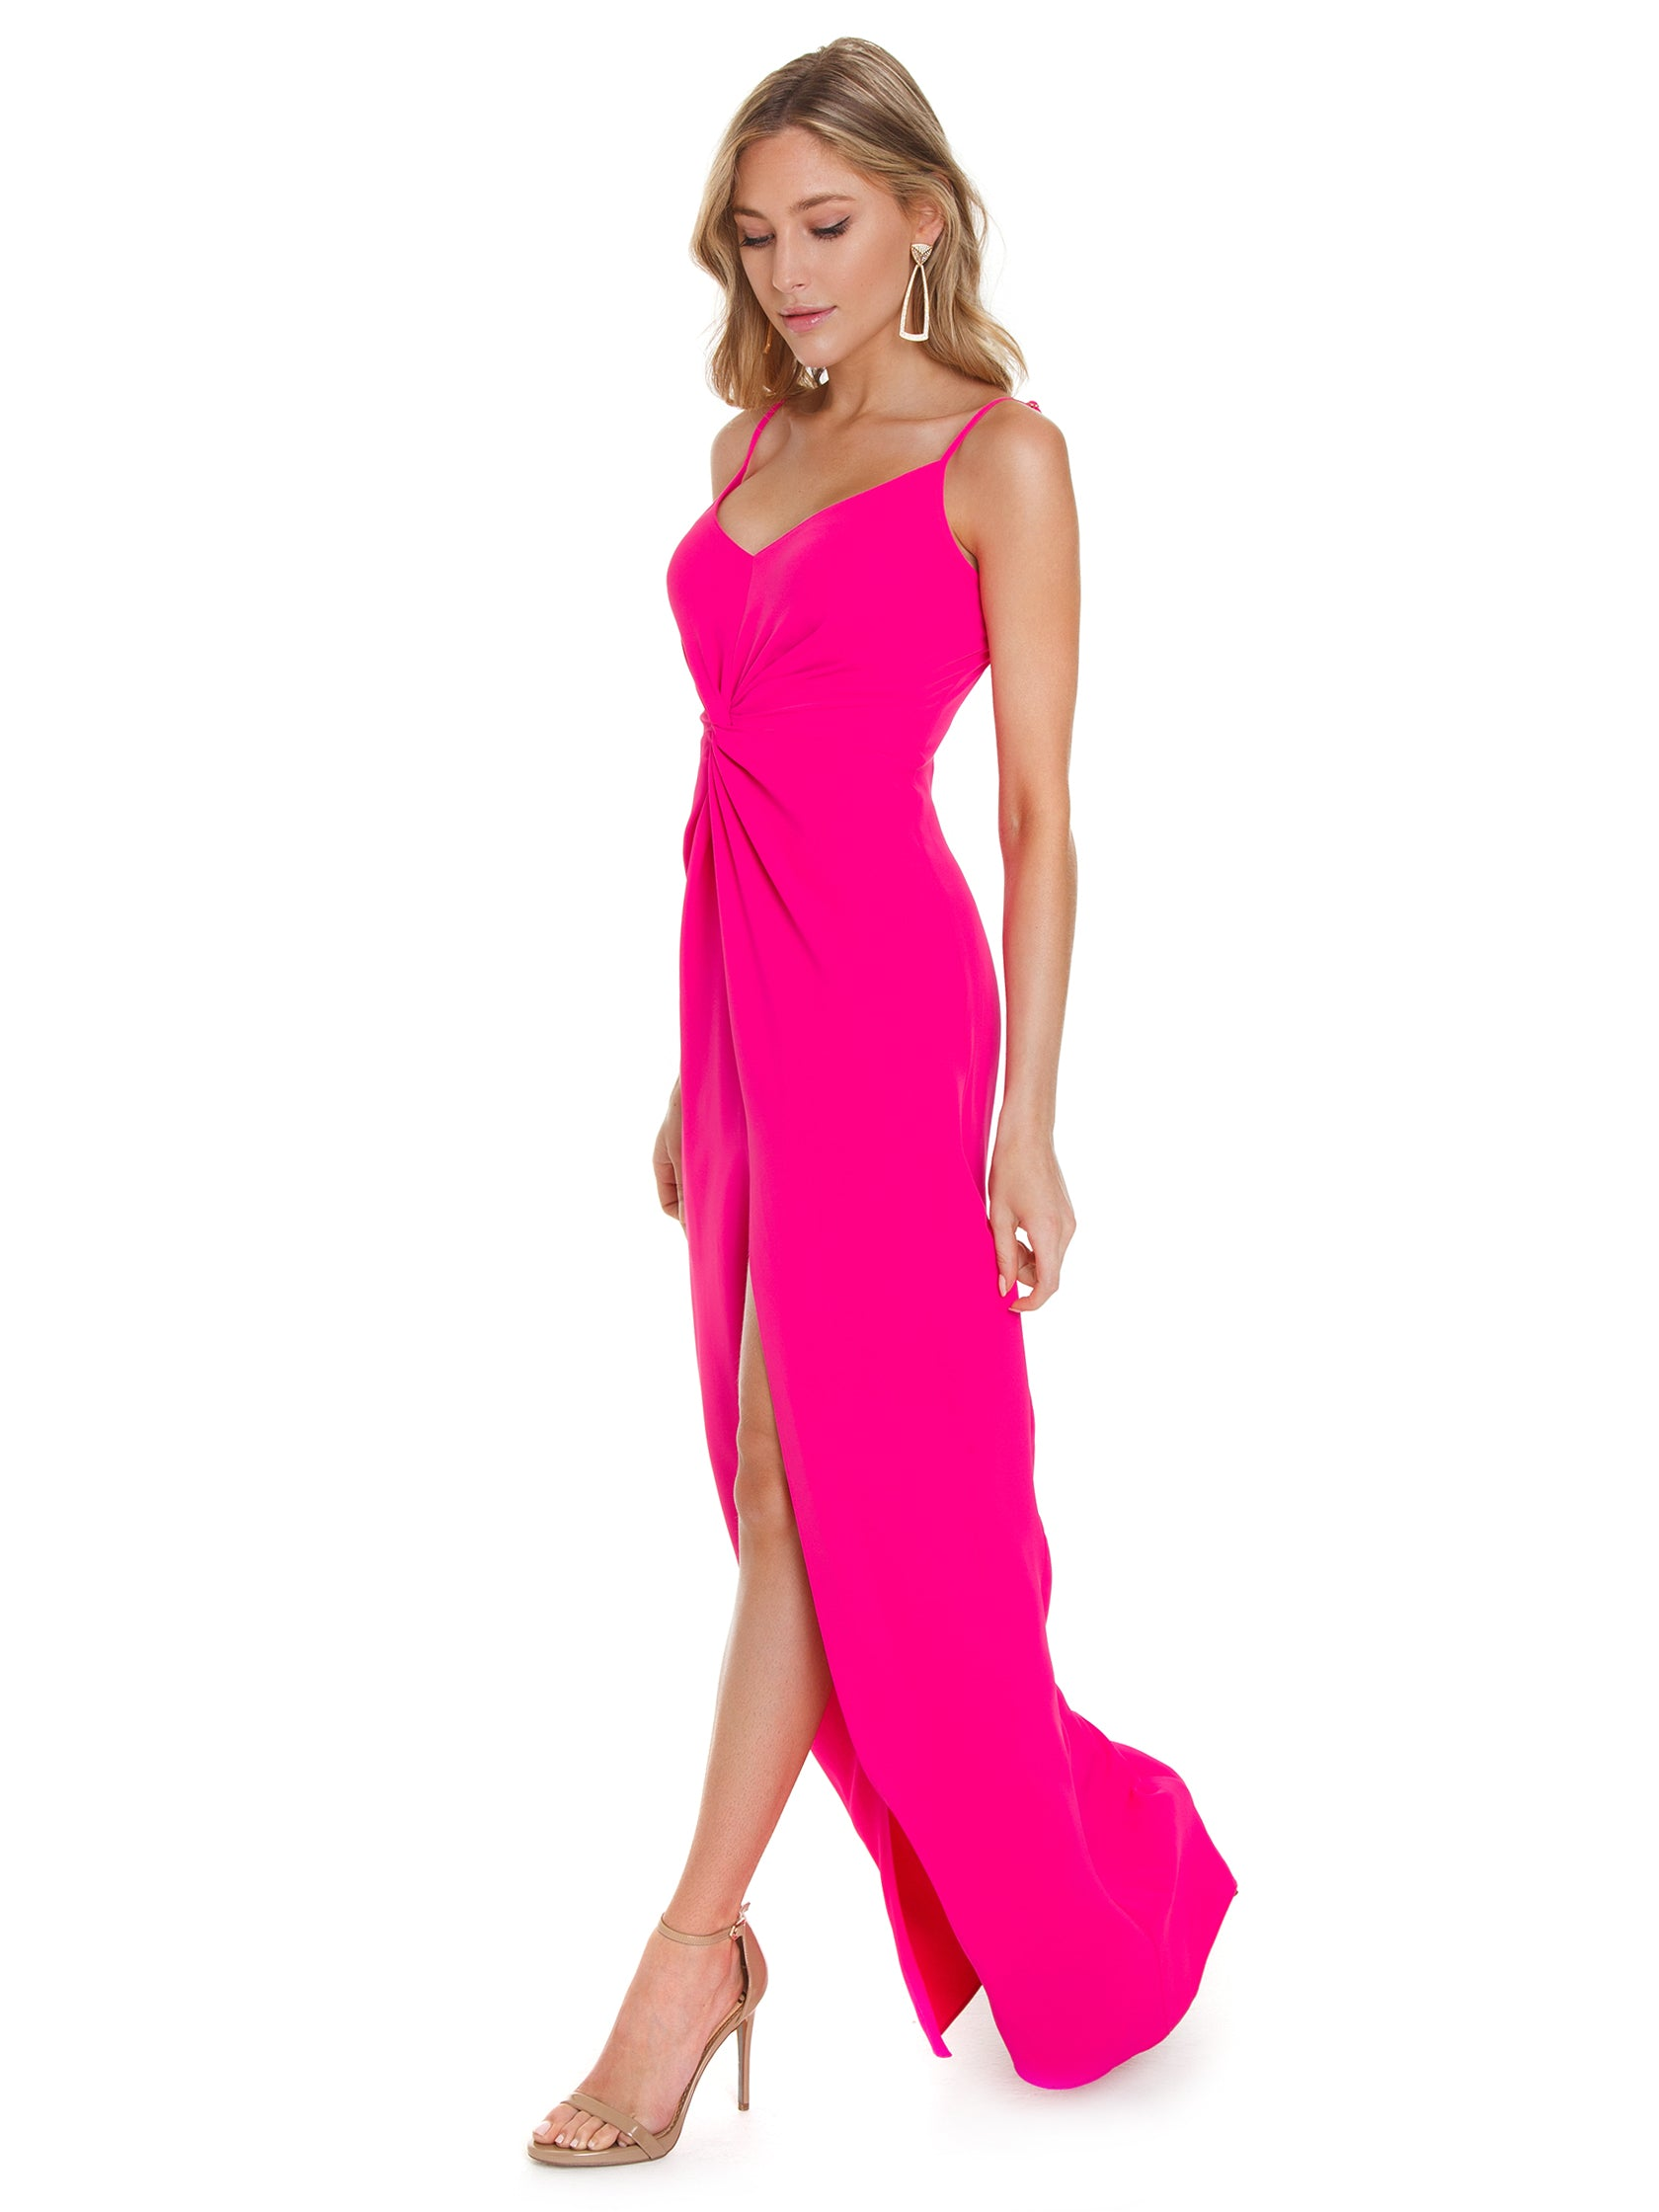 Women outfit in a dress rental from Amanda Uprichard called Ellie Maxi Dress